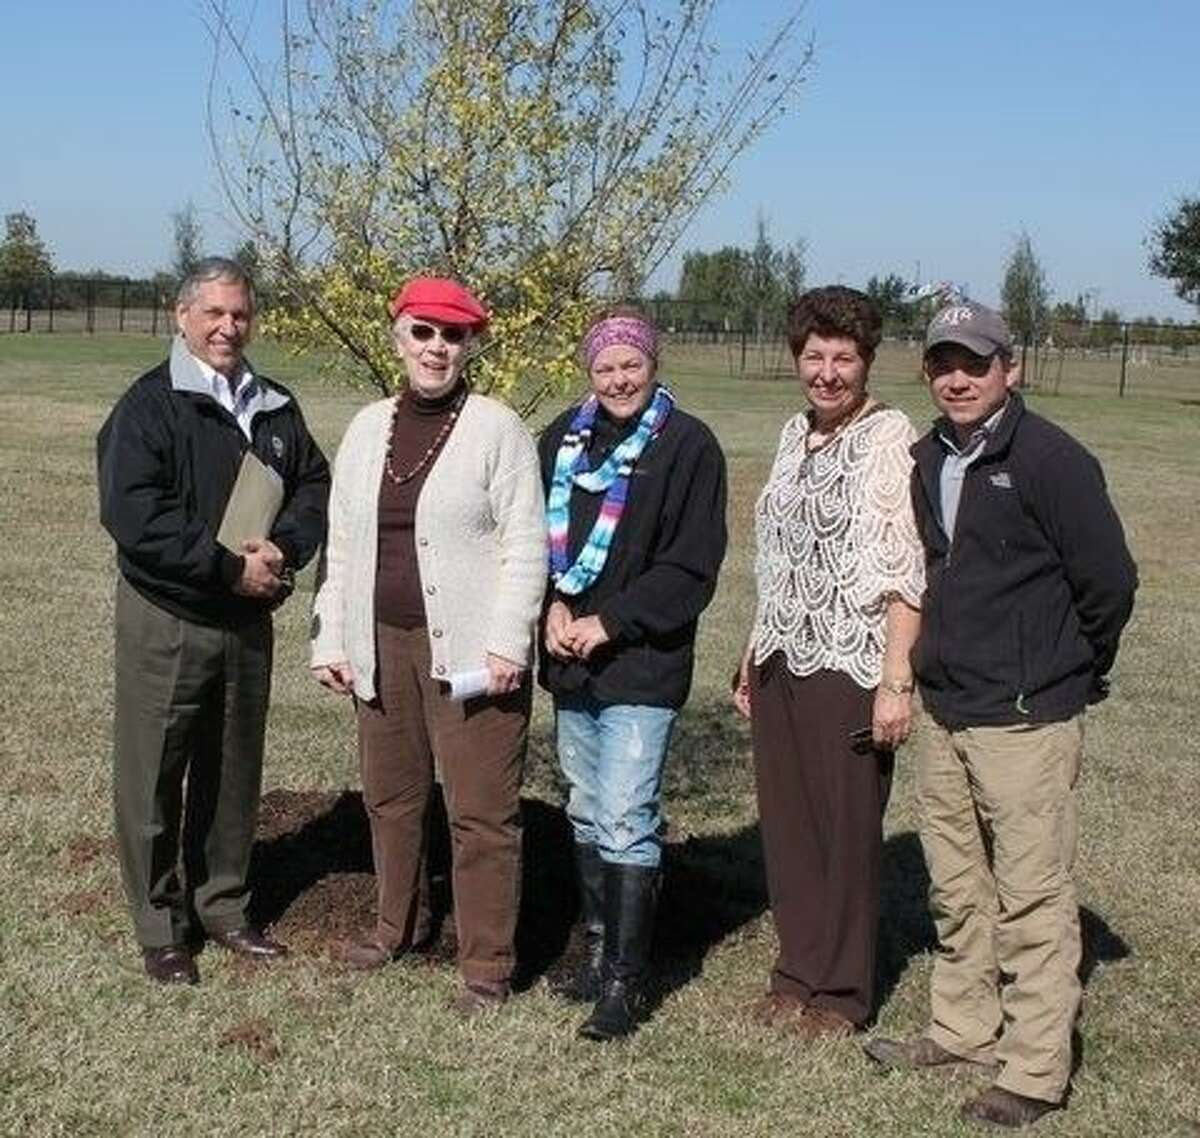 From left to right: Joe Chesser, Beverly Baumann, Lesley Durgin, Carrie Sample and William Hajdik.